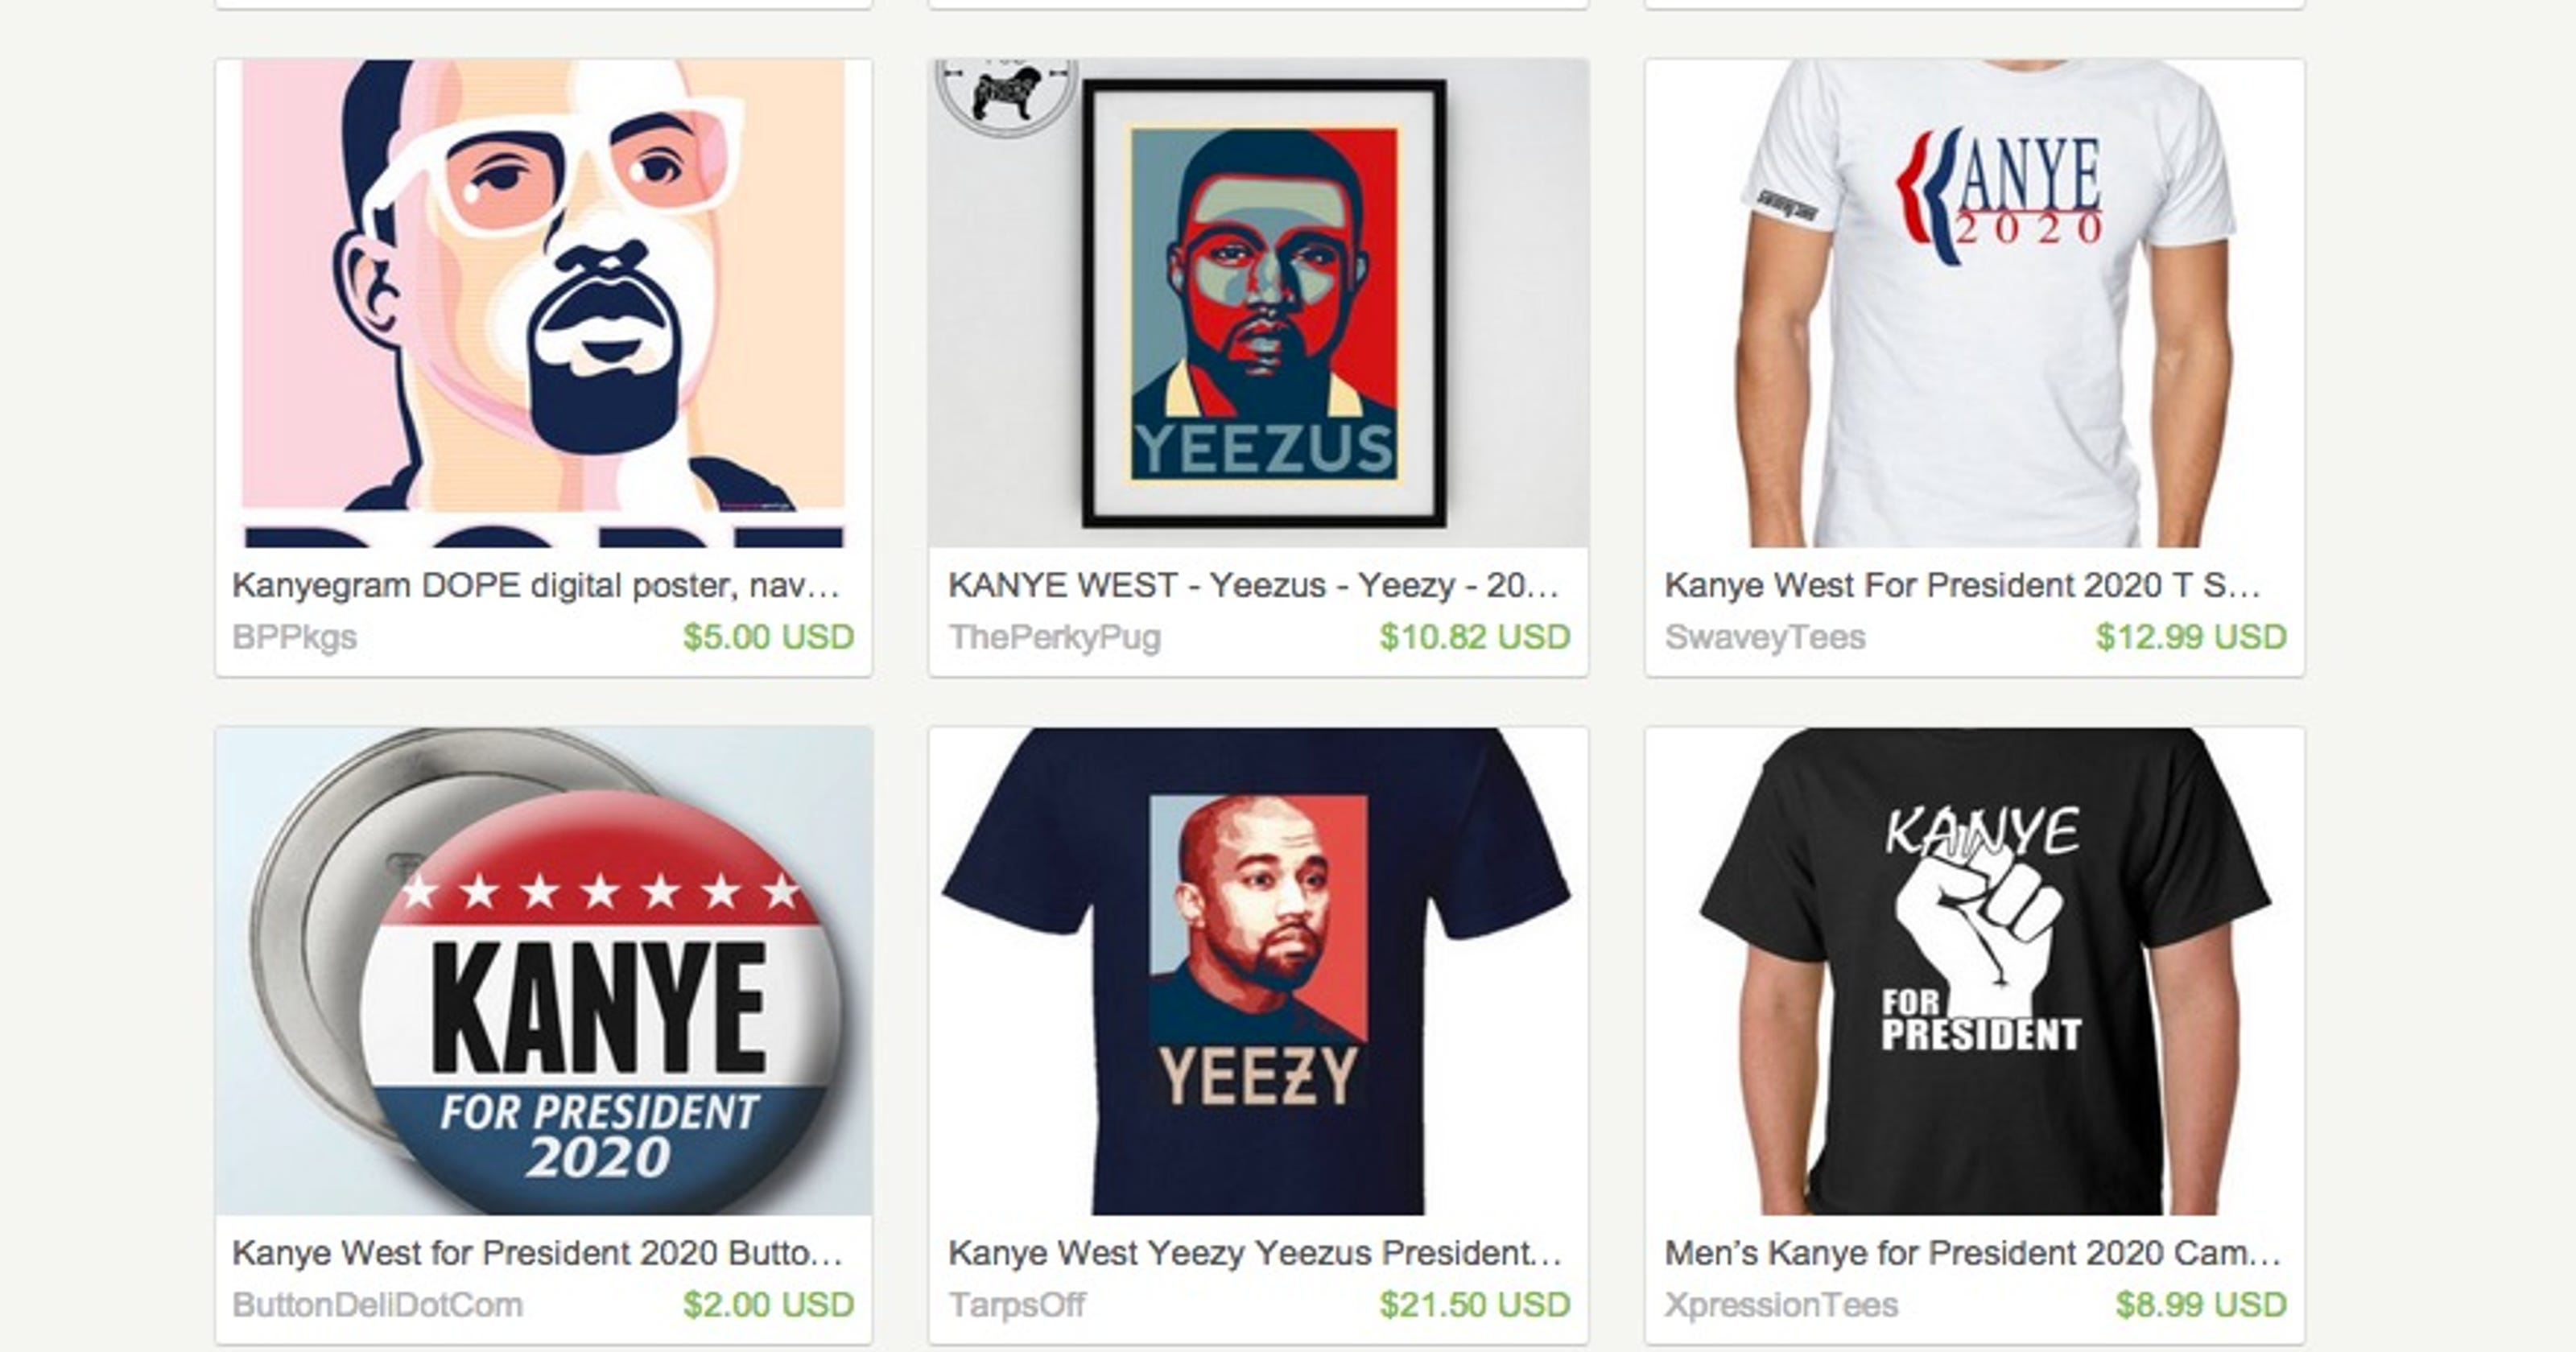 ce990bc7 You can now buy 'Kanye for President 2020' merch, thanks to Etsy